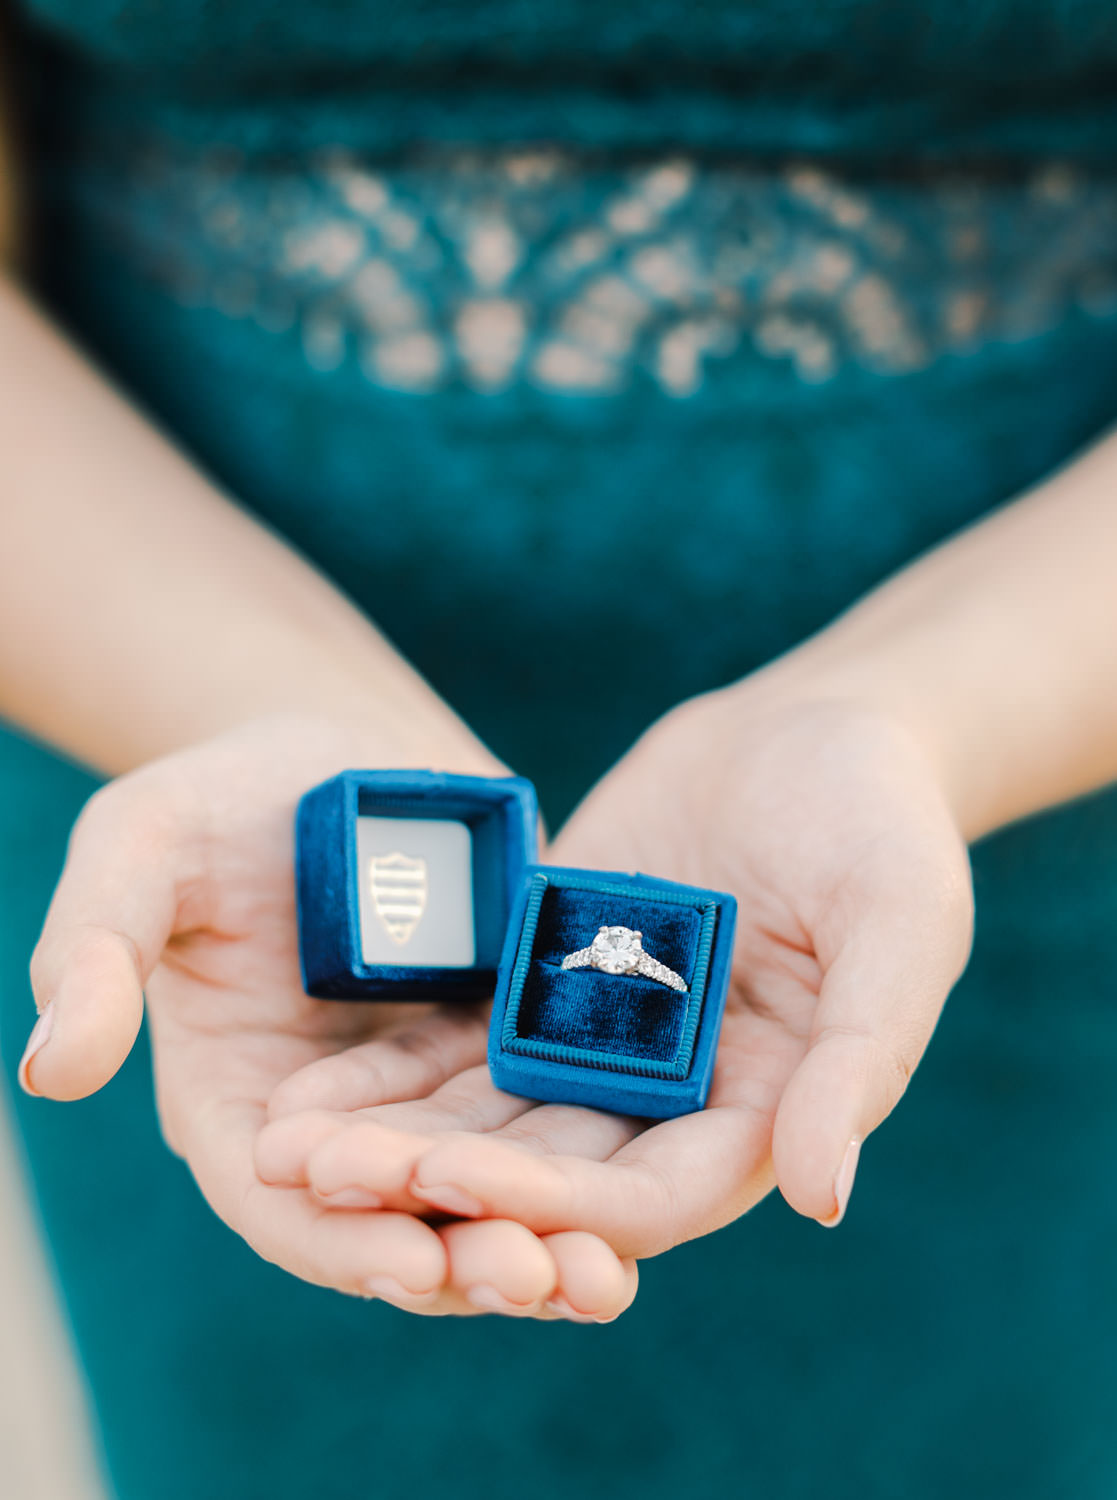 Bride wearing dark teal lace cut dress holding her engagement ring in a navy blue Mrs Box, Balboa Park cactus garden engagement photos by Cavin Elizabeth Photography